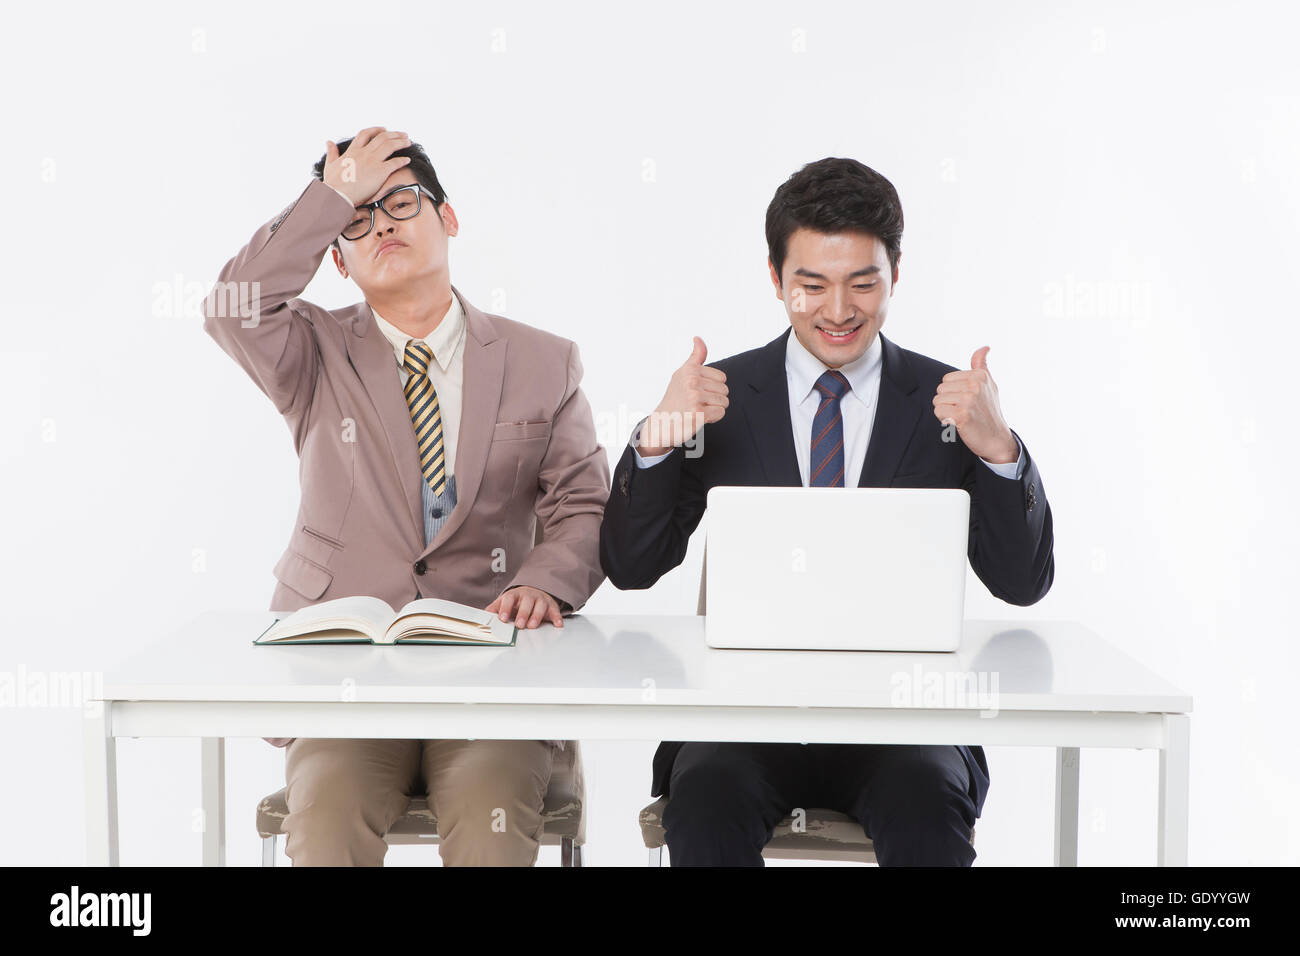 Contrast of two business men, one stressful with a book and the other successful with a notebook computer - Stock Image